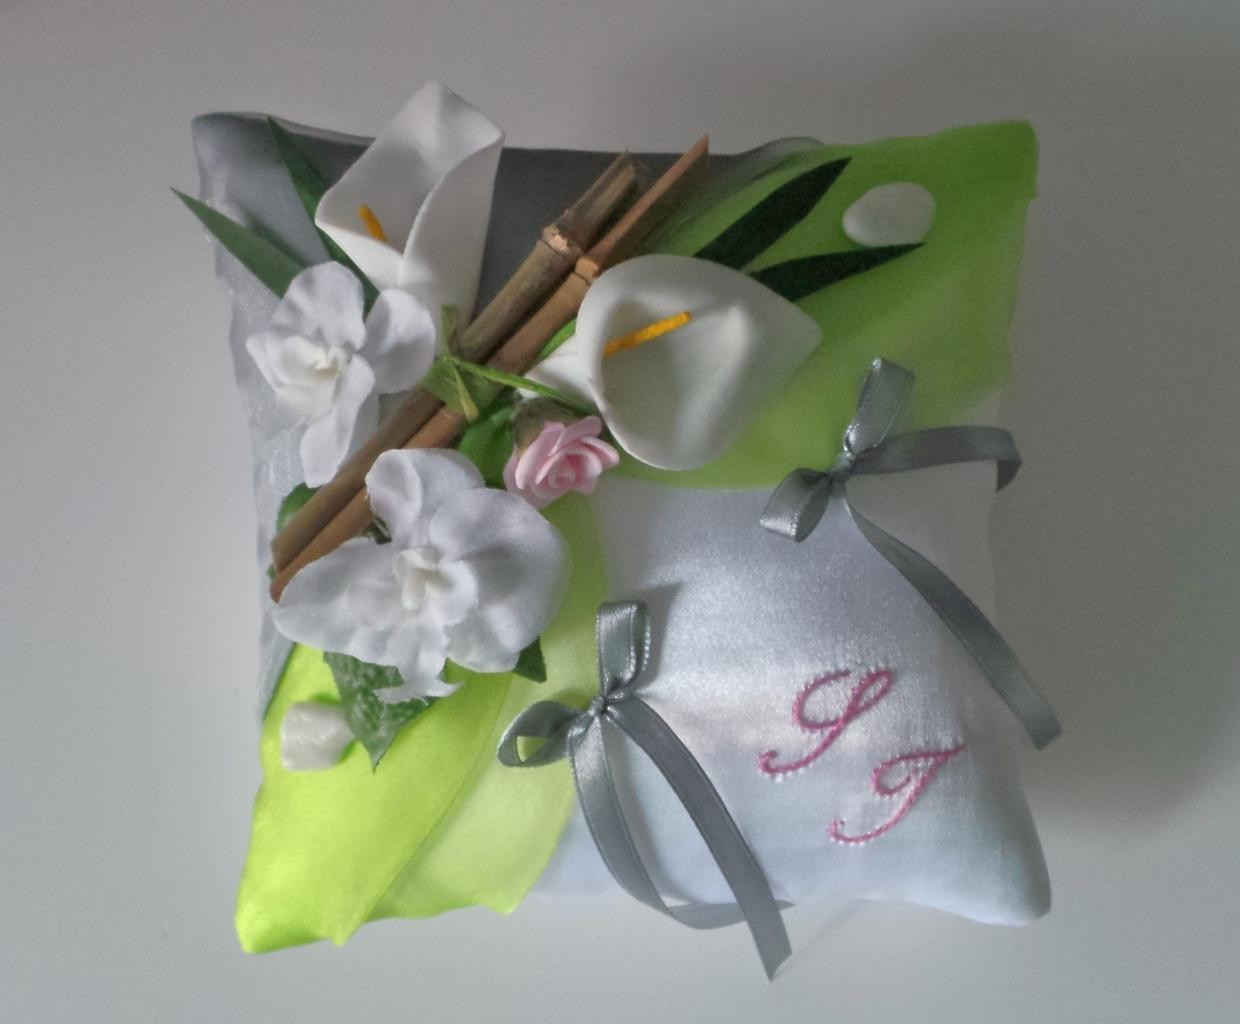 Coussin alliance personnalise champetre chic vert anis gris rose pastel